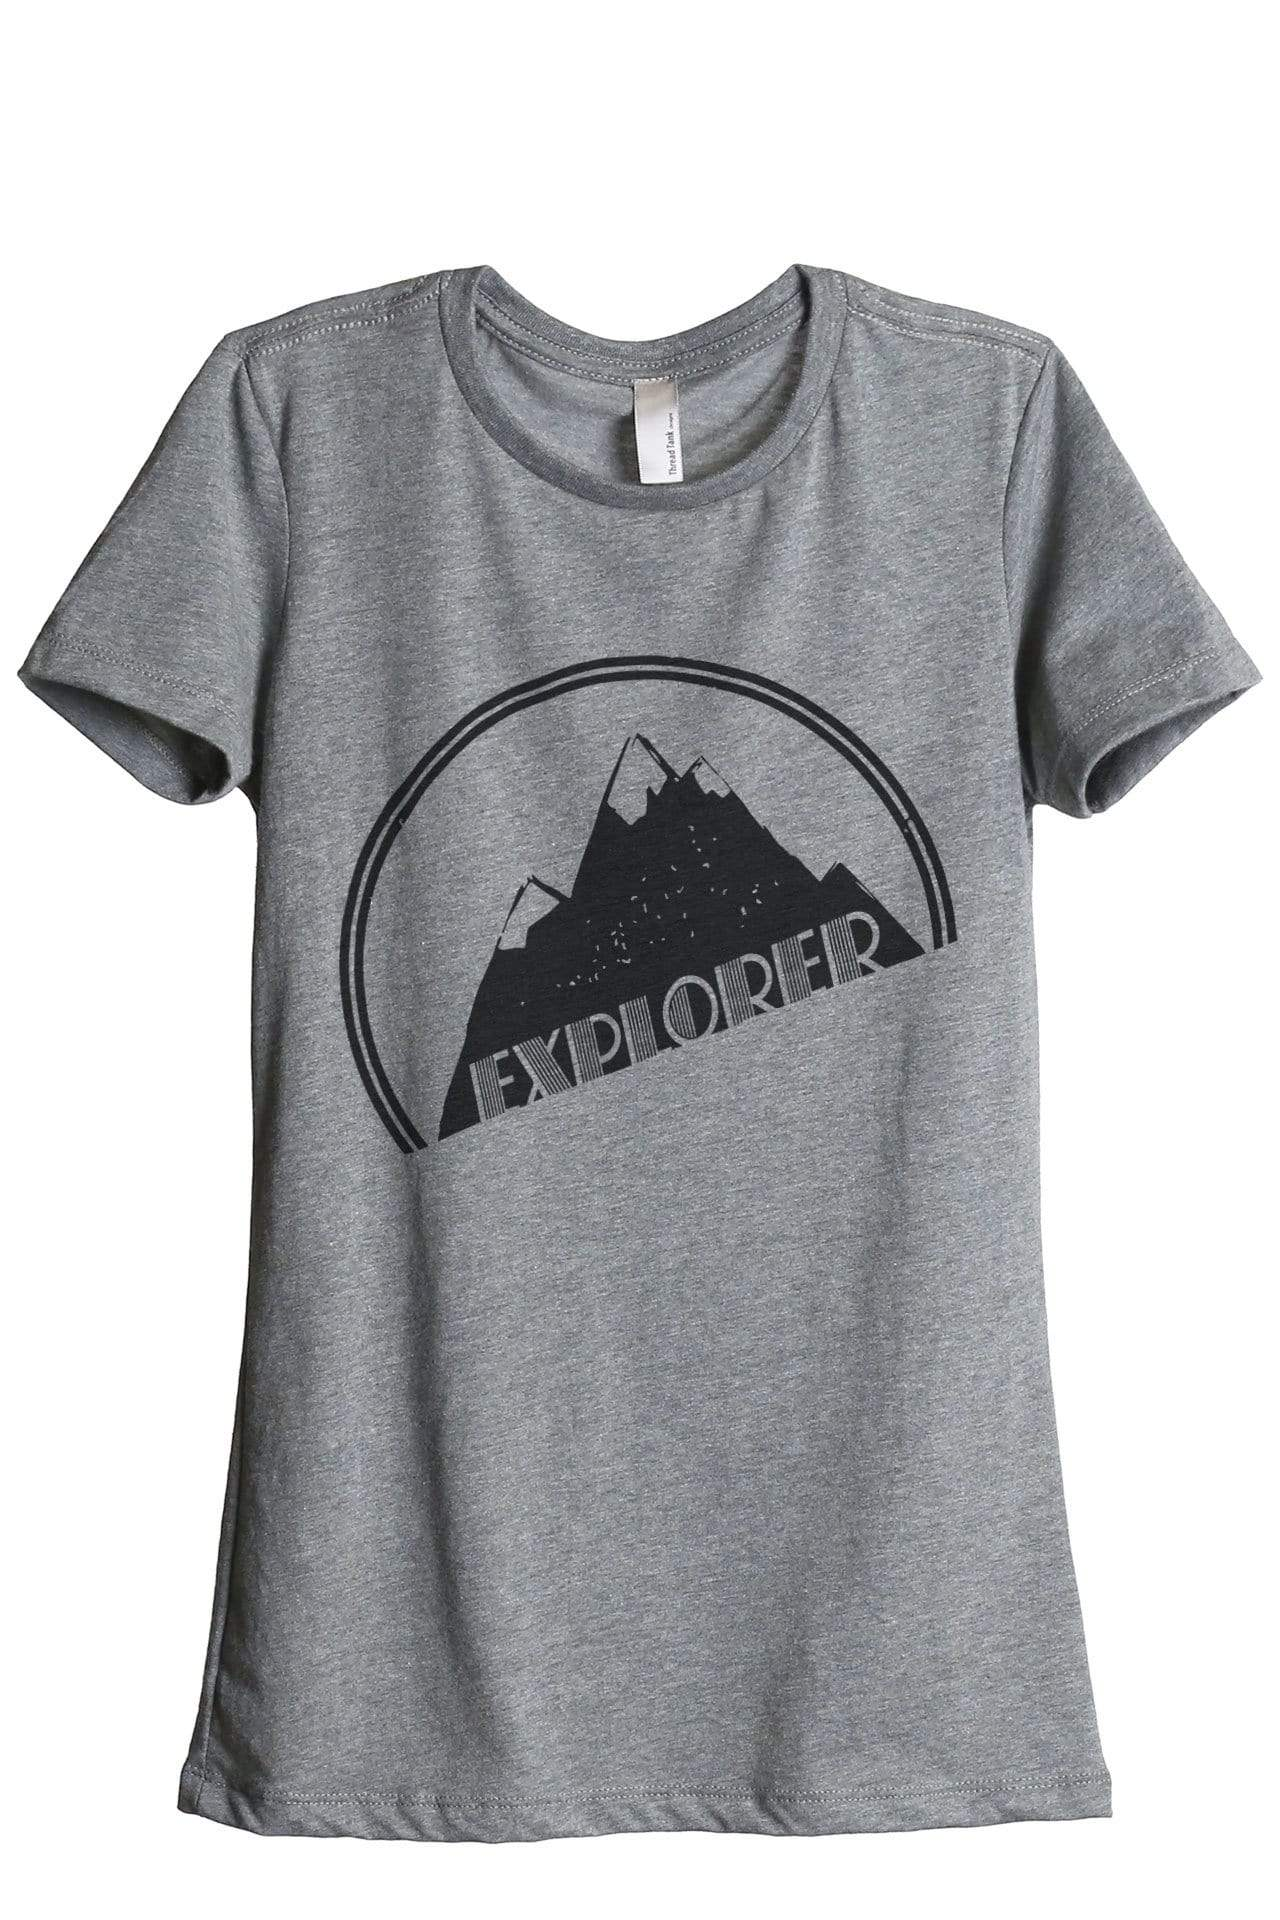 Explorer - Thread Tank | Stories You Can Wear | T-Shirts, Tank Tops and Sweatshirts